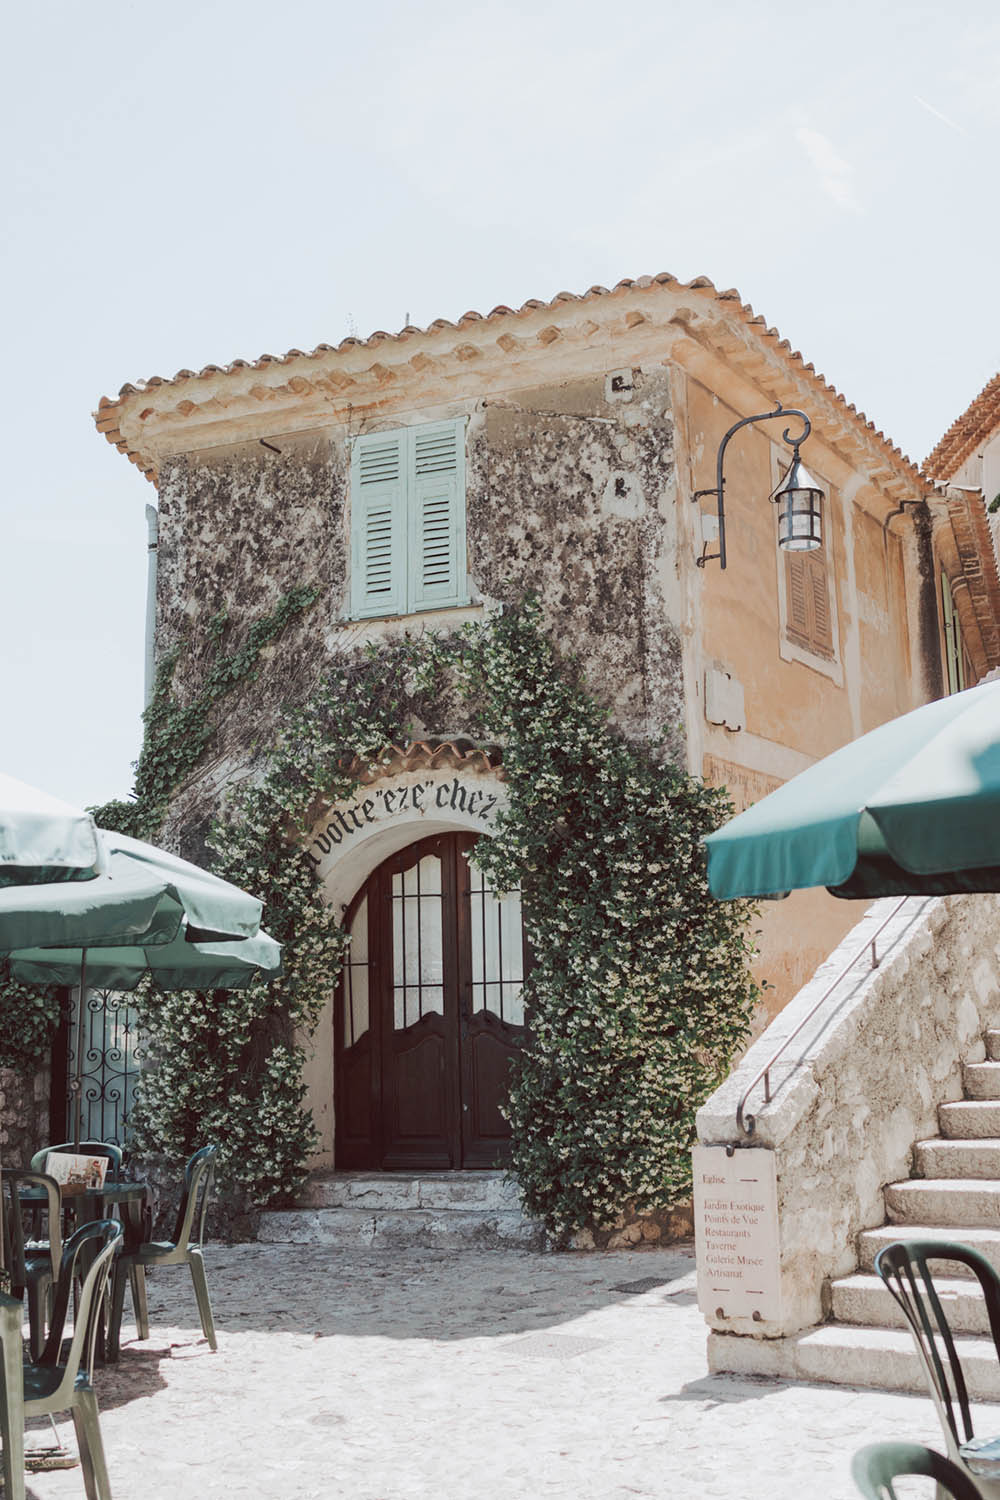 Day Trip To Eze – The South of France Medieval Village